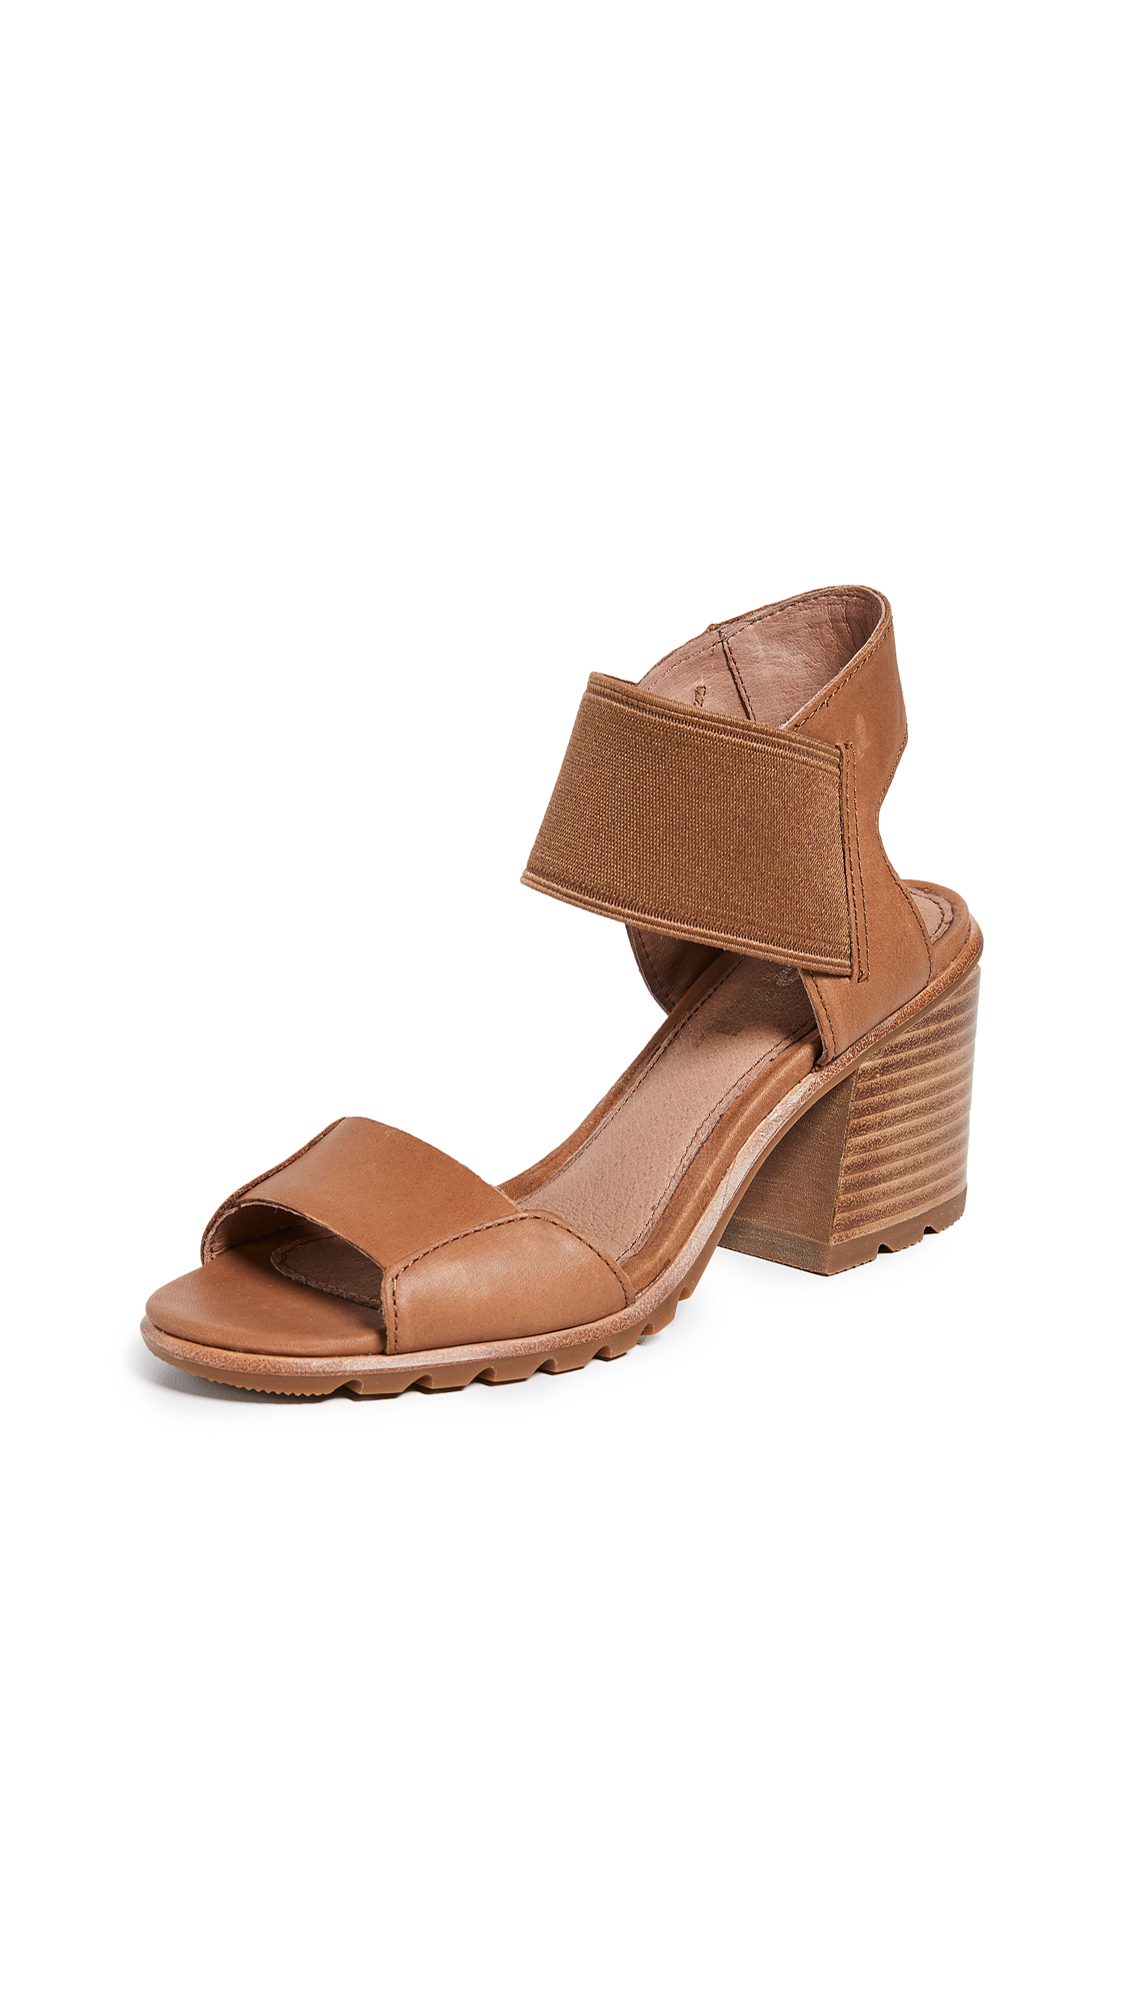 Sorel Nadia Sandals - Camel Brown